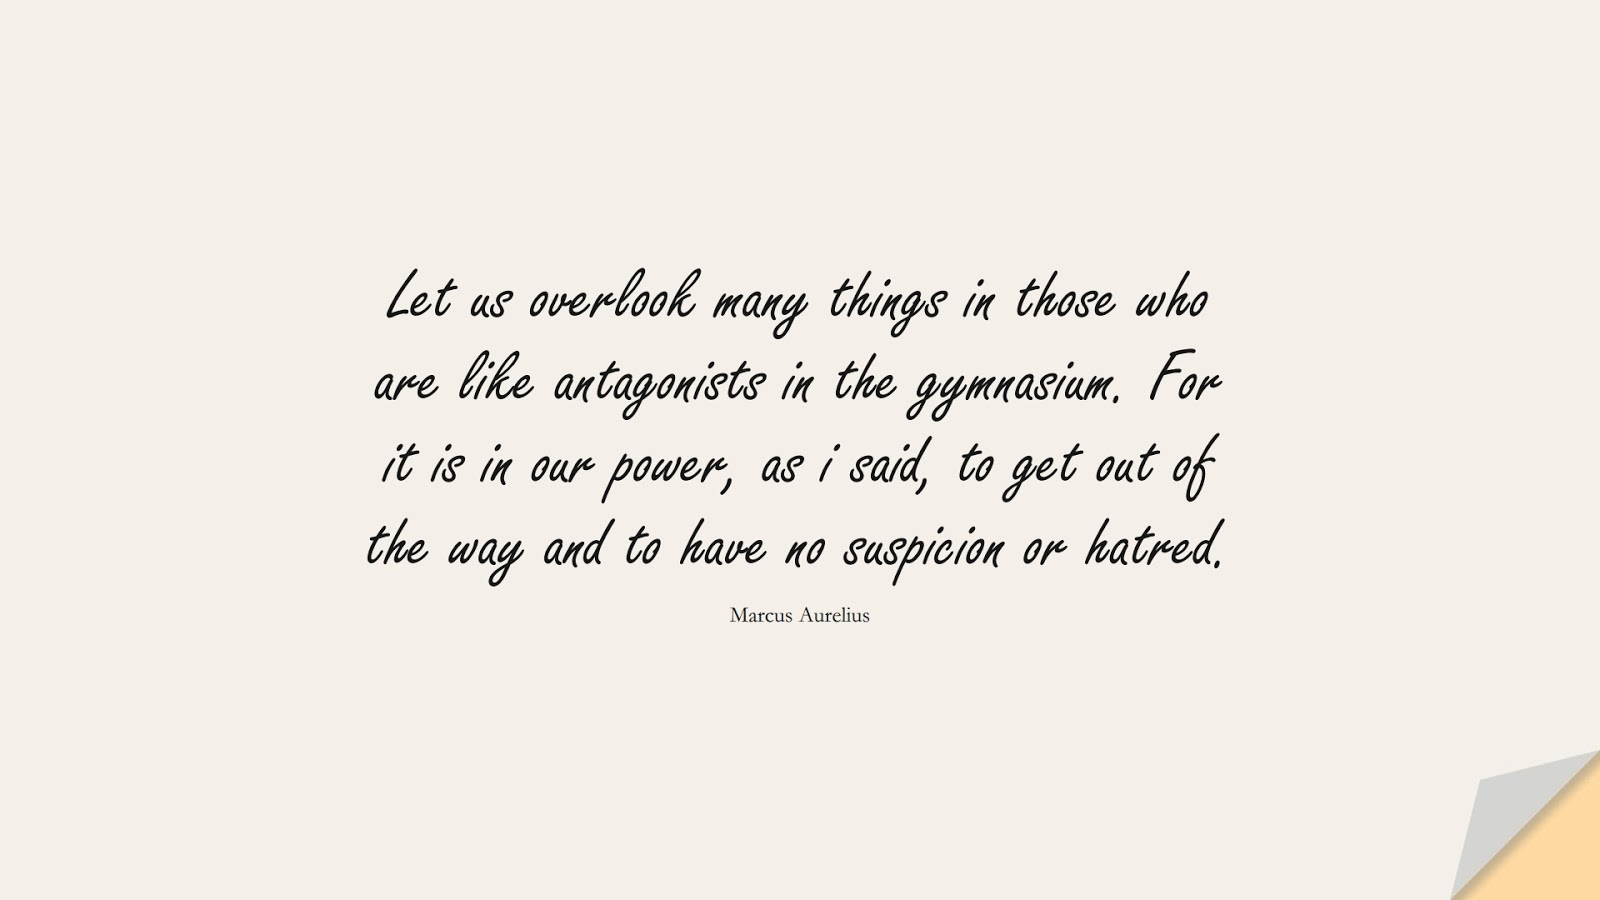 Let us overlook many things in those who are like antagonists in the gymnasium. For it is in our power, as i said, to get out of the way and to have no suspicion or hatred. (Marcus Aurelius);  #MarcusAureliusQuotes